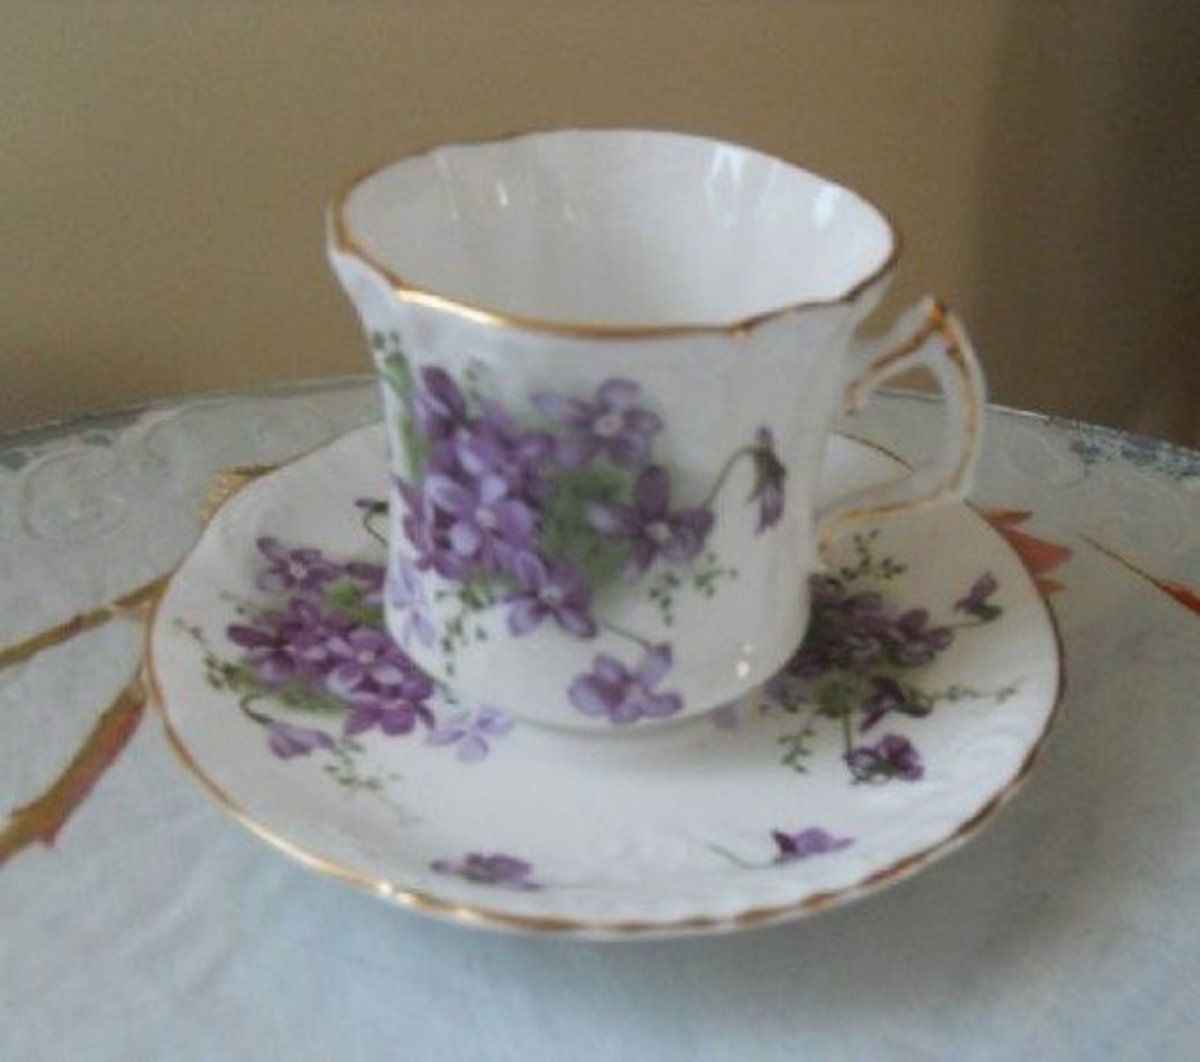 Victorian Violets Teacup and Saucer—Hammersley—a member of the Spode Group